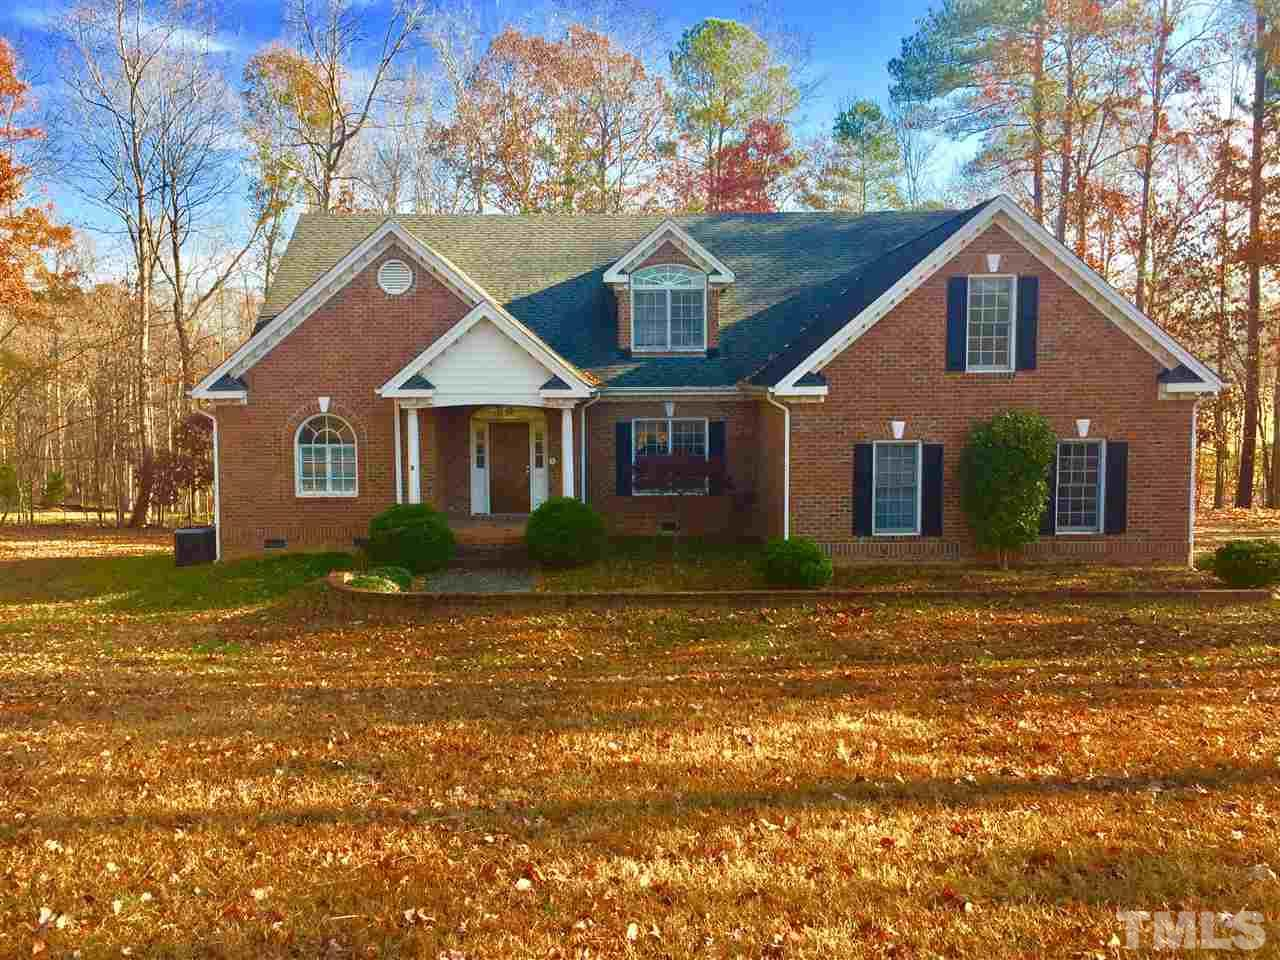 445 Havenfield Court Apex - 2